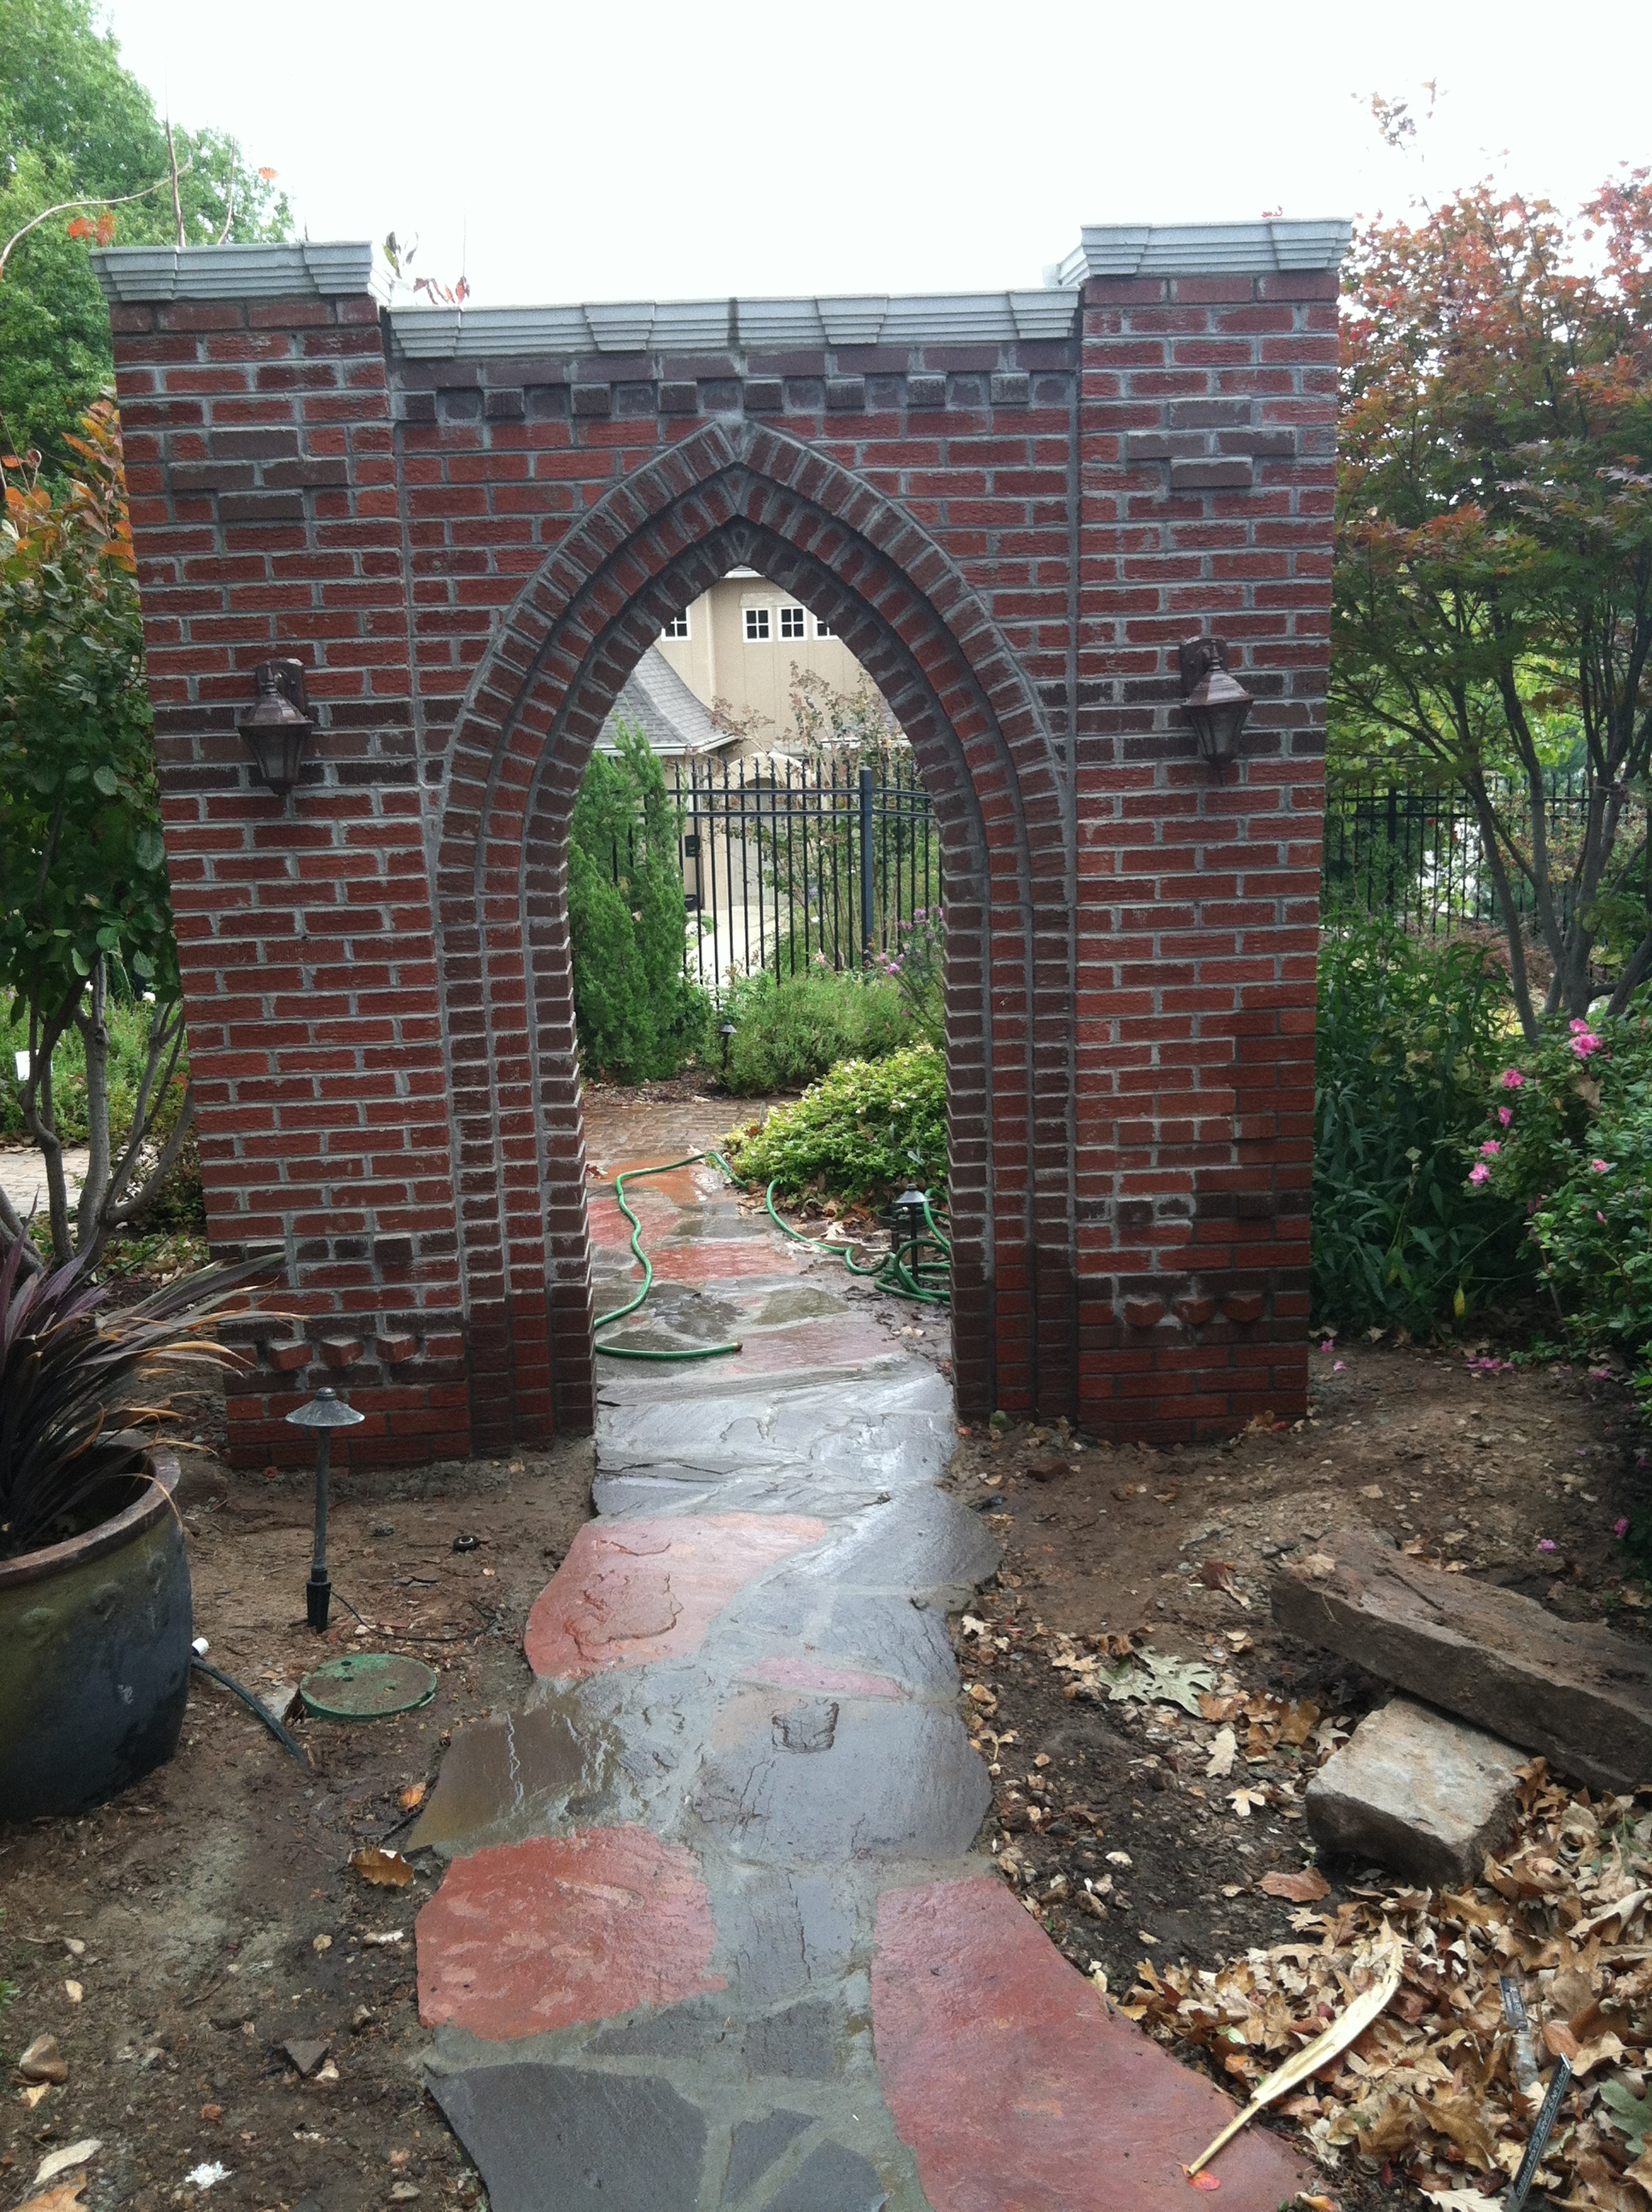 Kodiak Custom Masonry Tulsa Brick Works